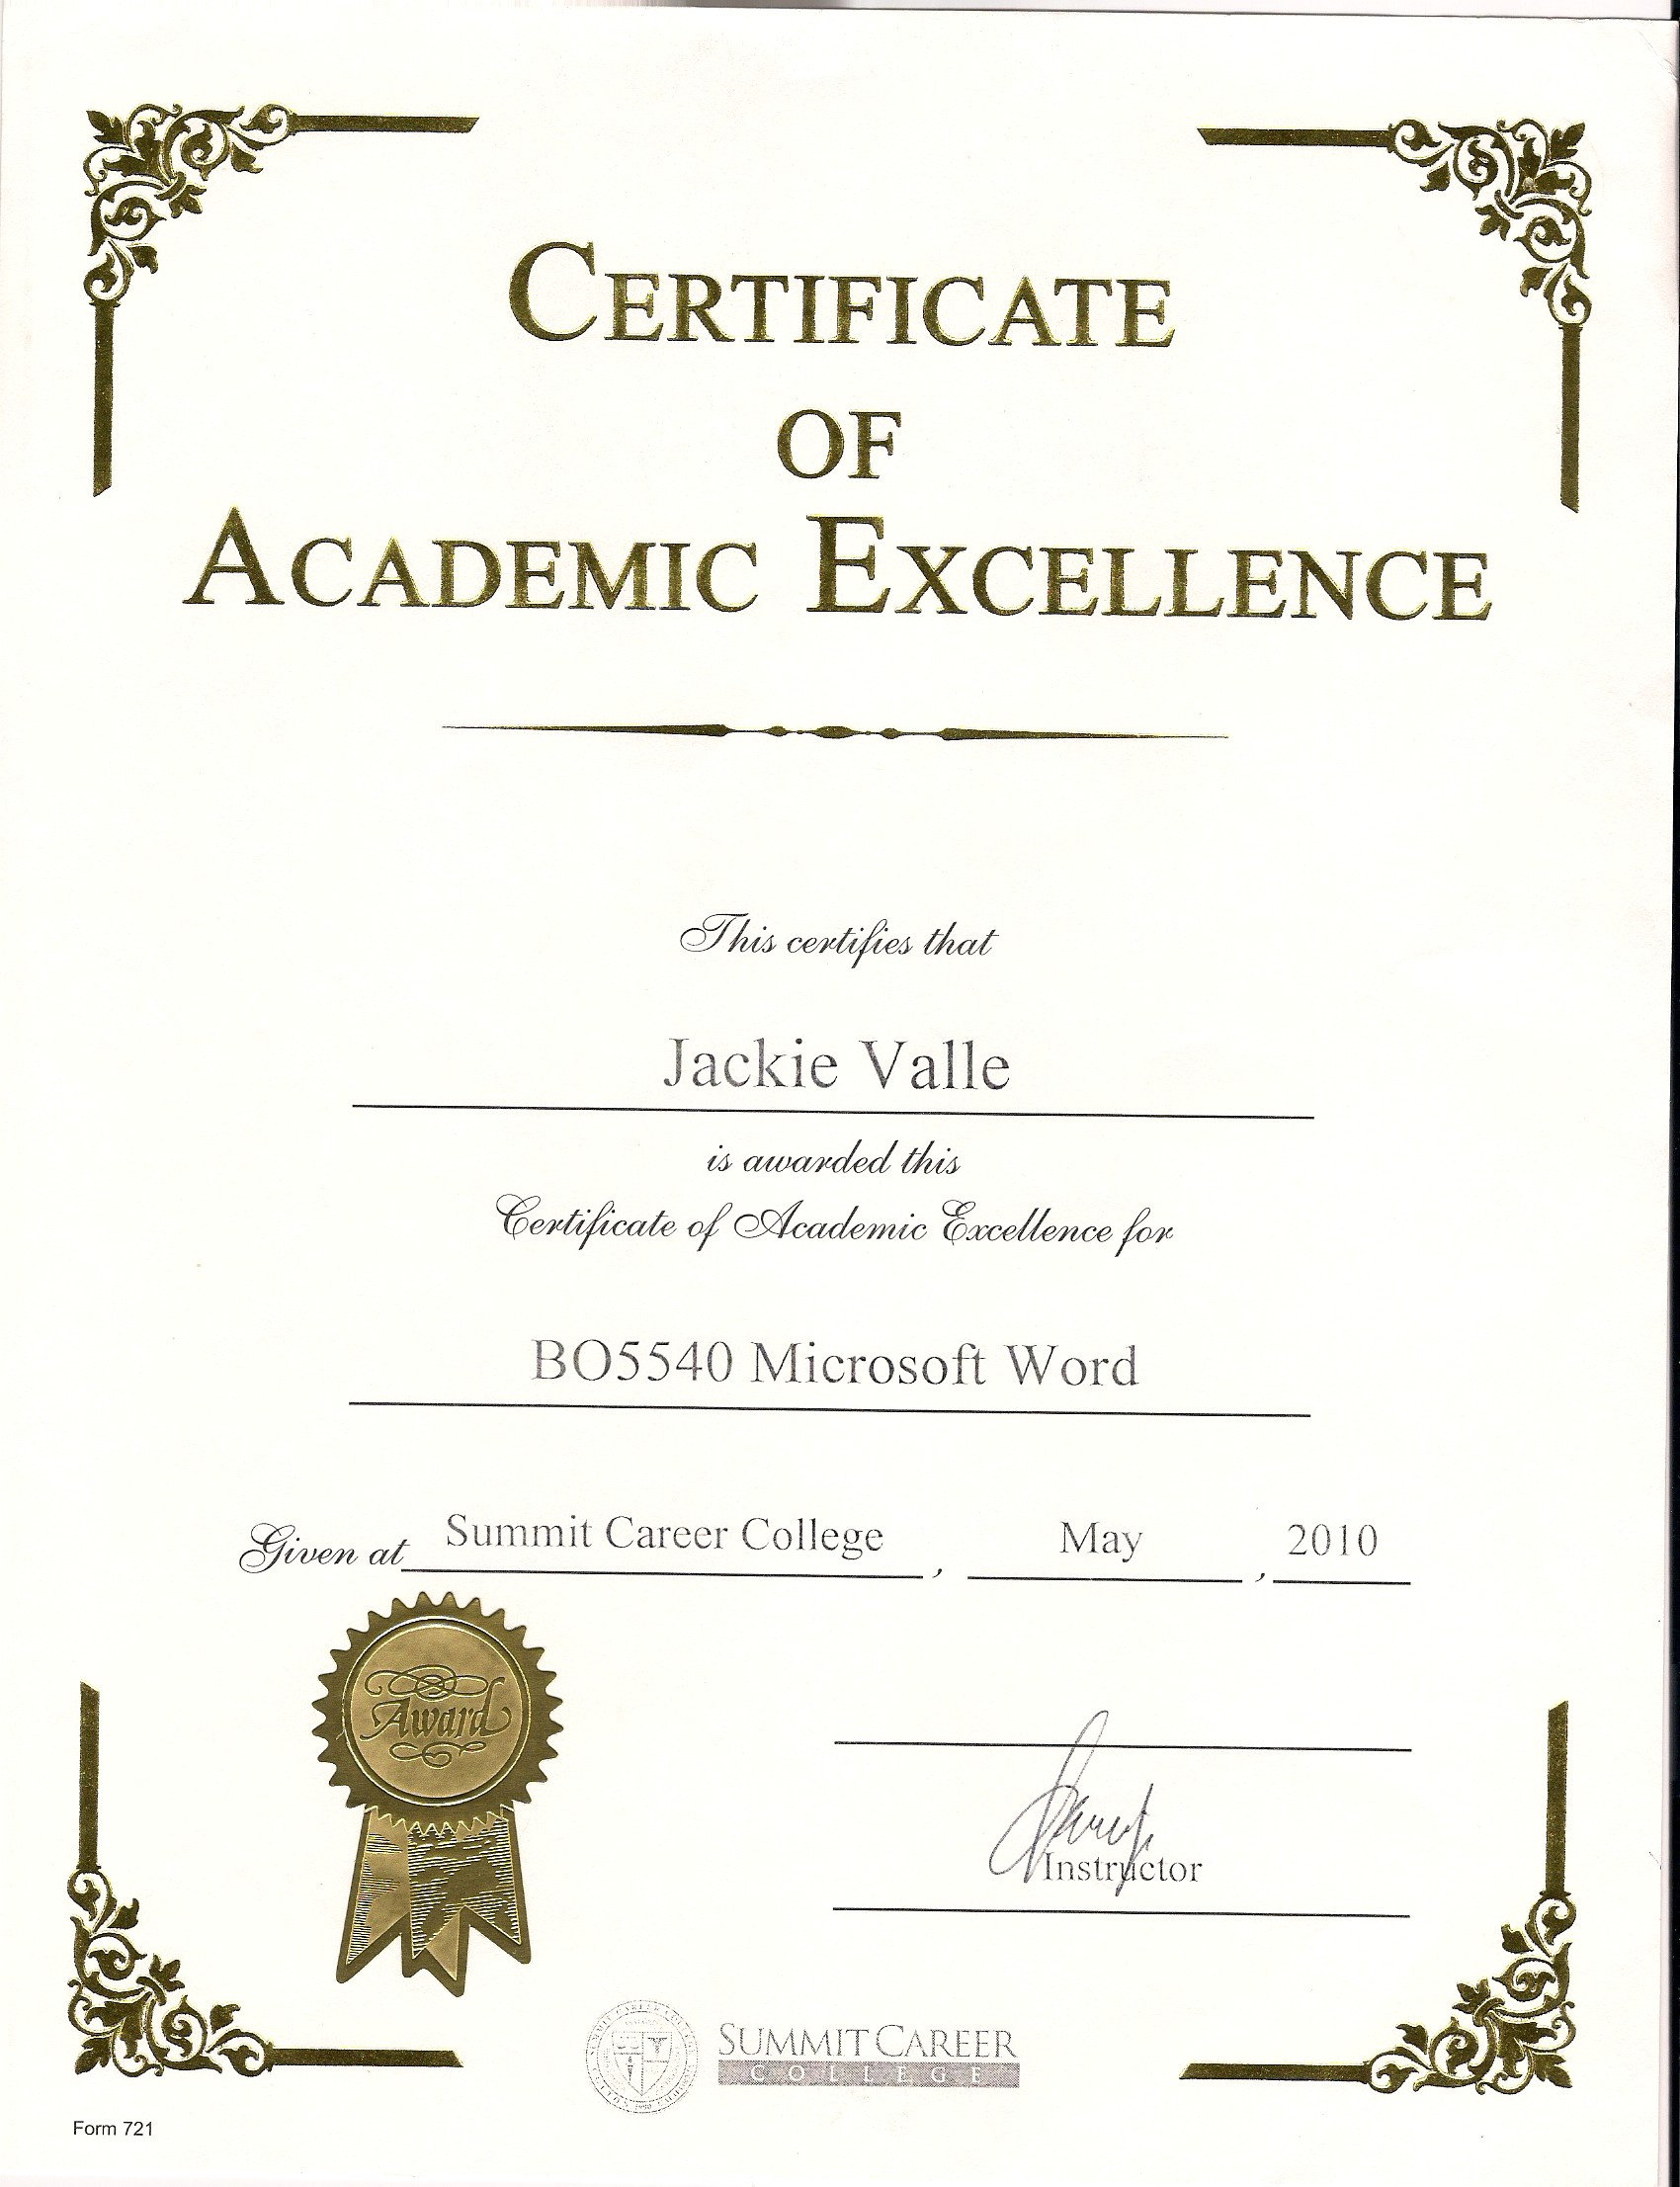 certificate template word portrait - awards and certificates jacqueline valle professional